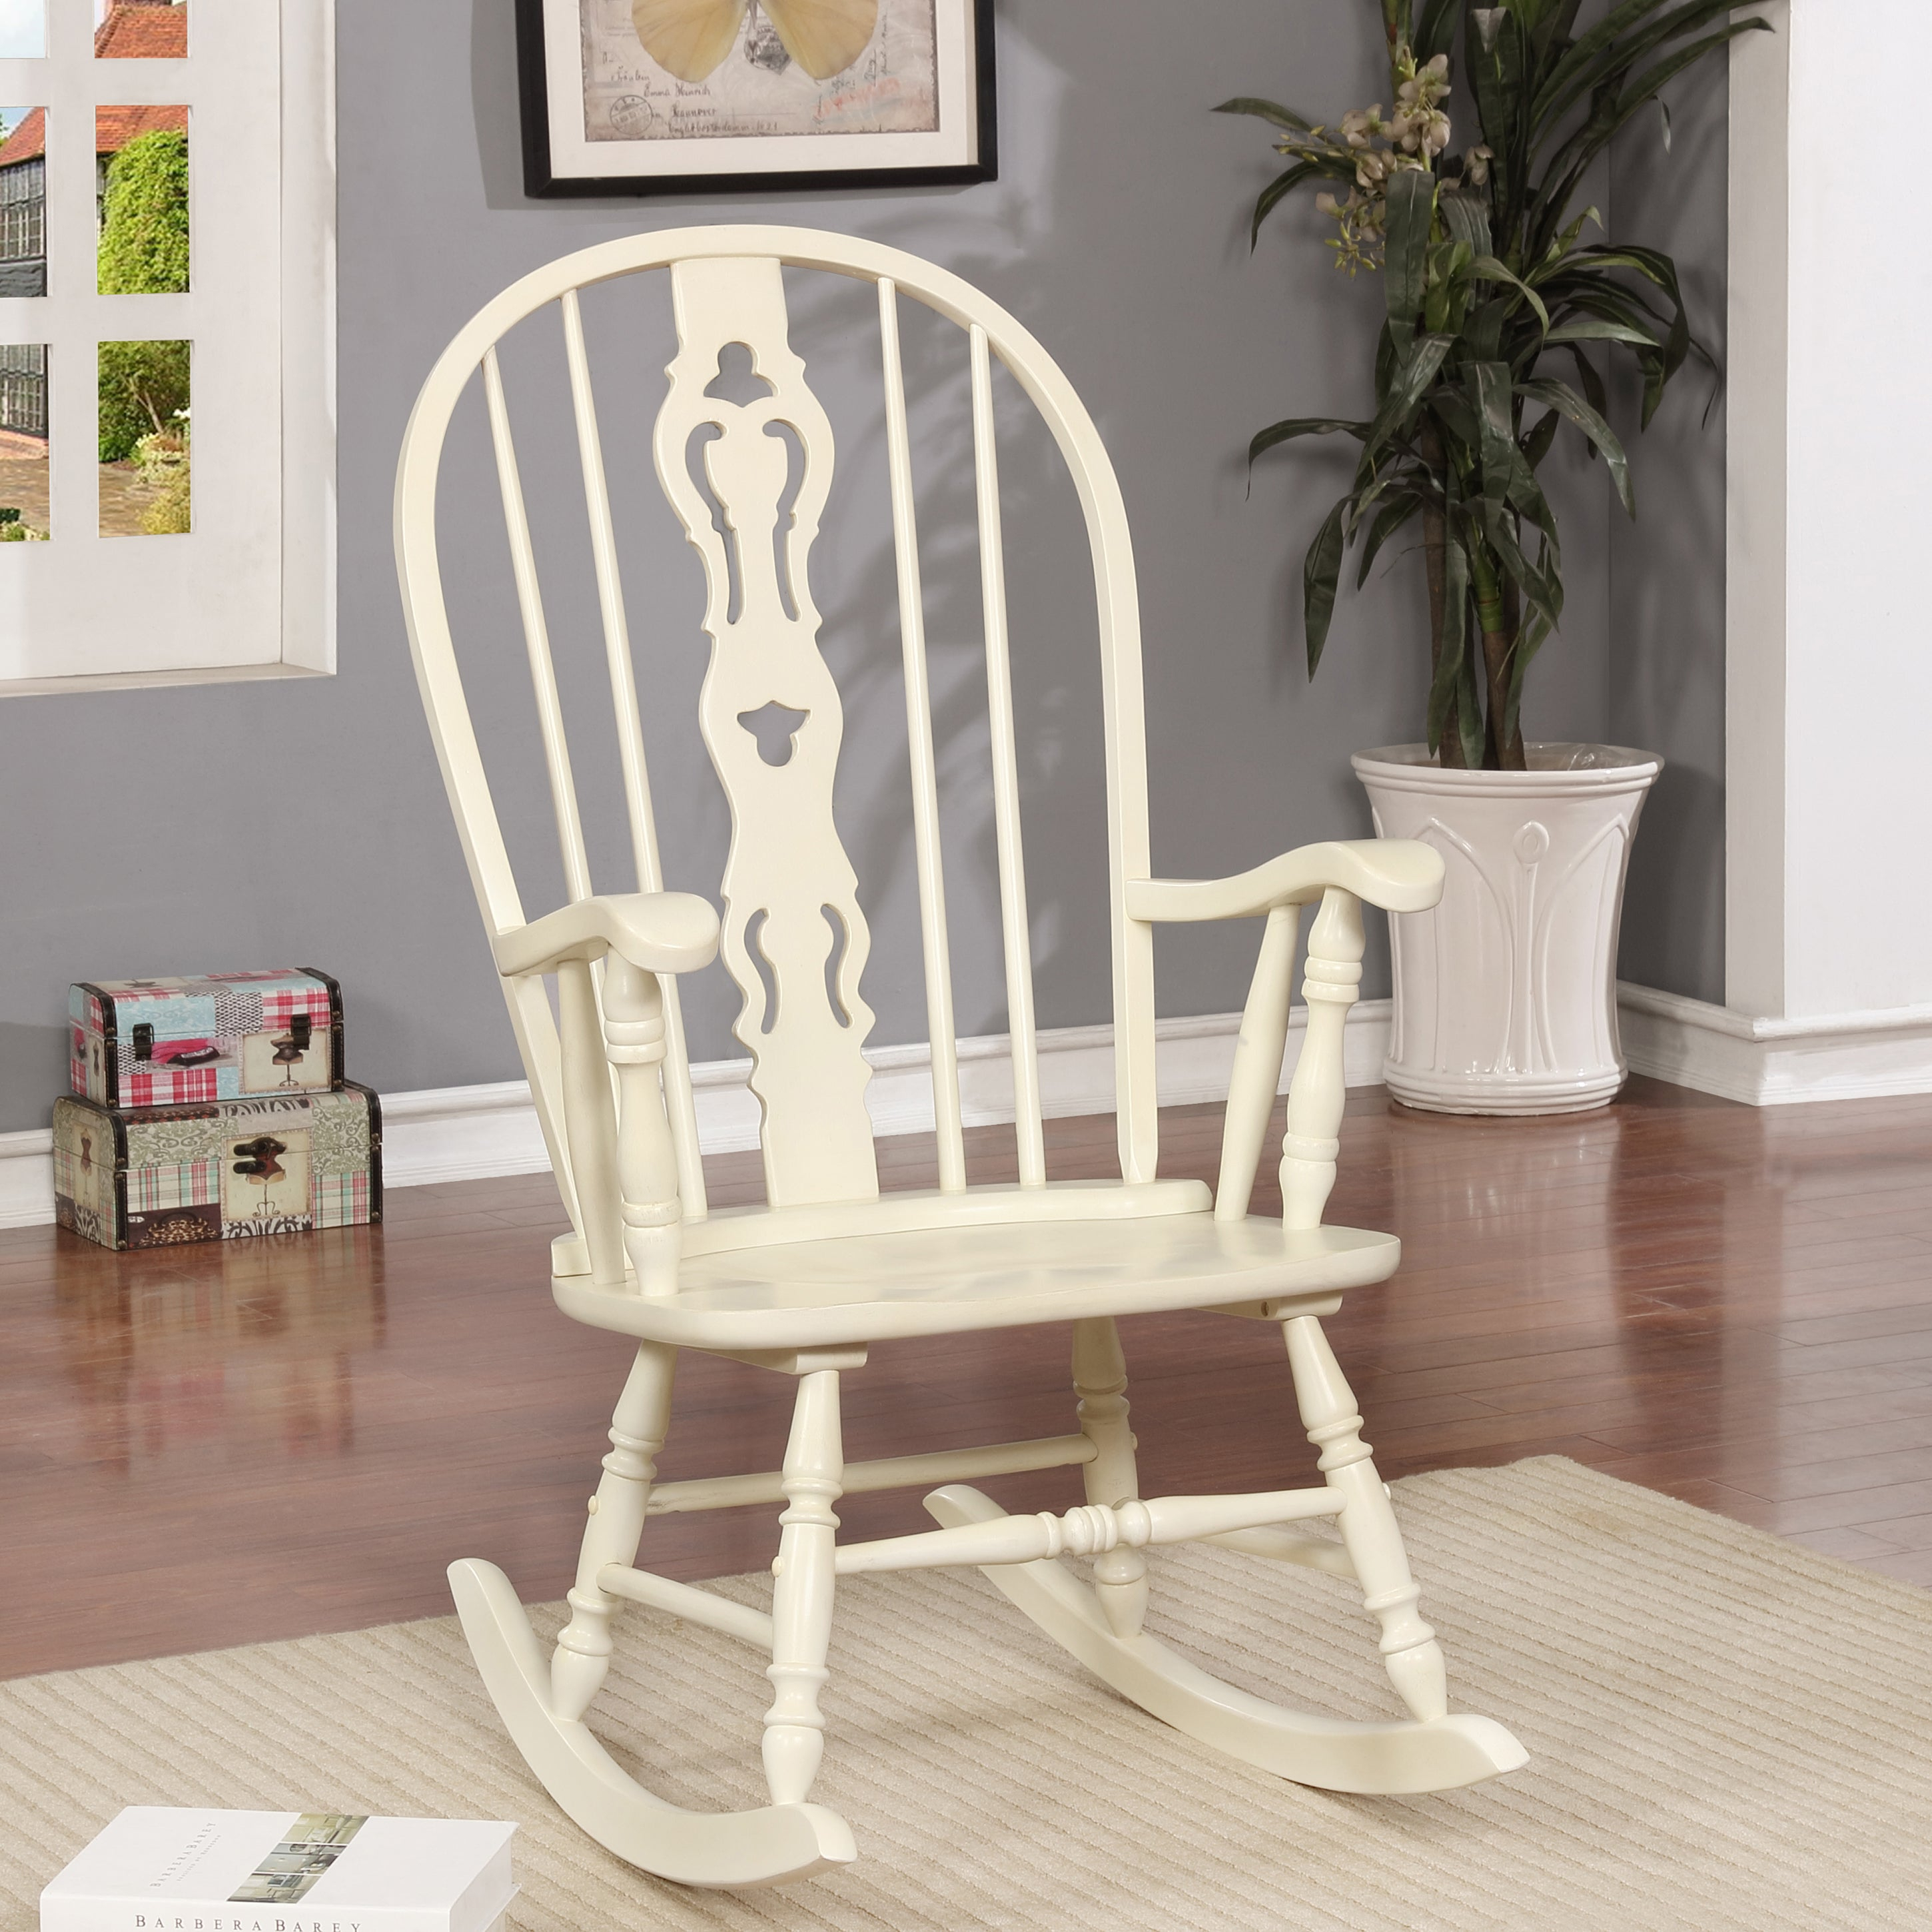 Popular Photo of Ethel Country White Rocking Chairs